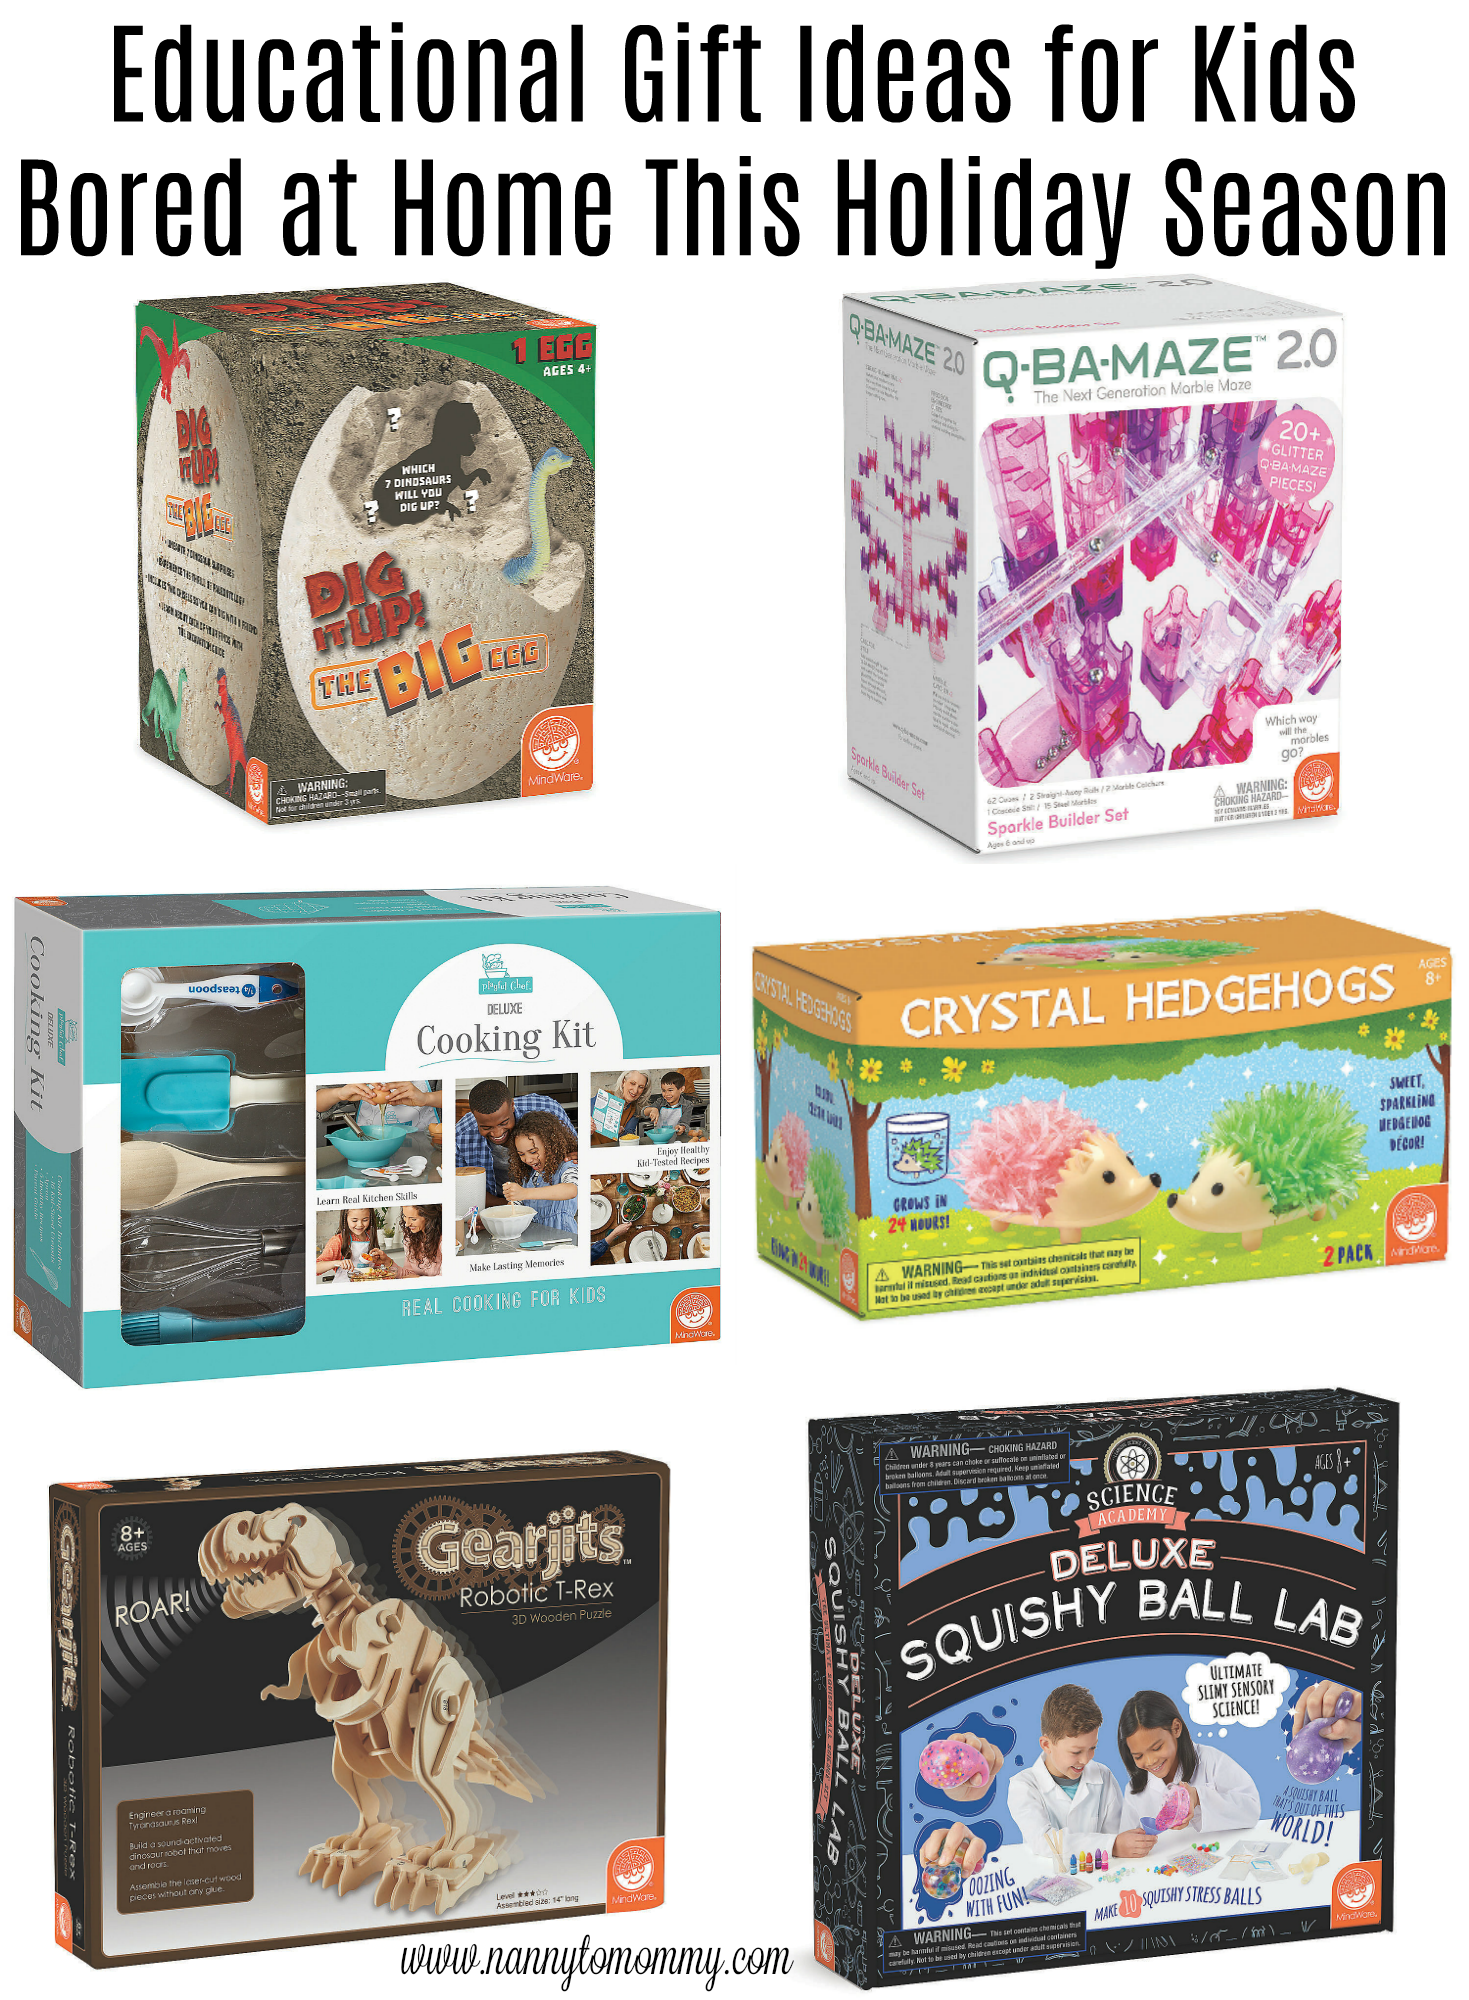 educational gift ideas for kids bored at home